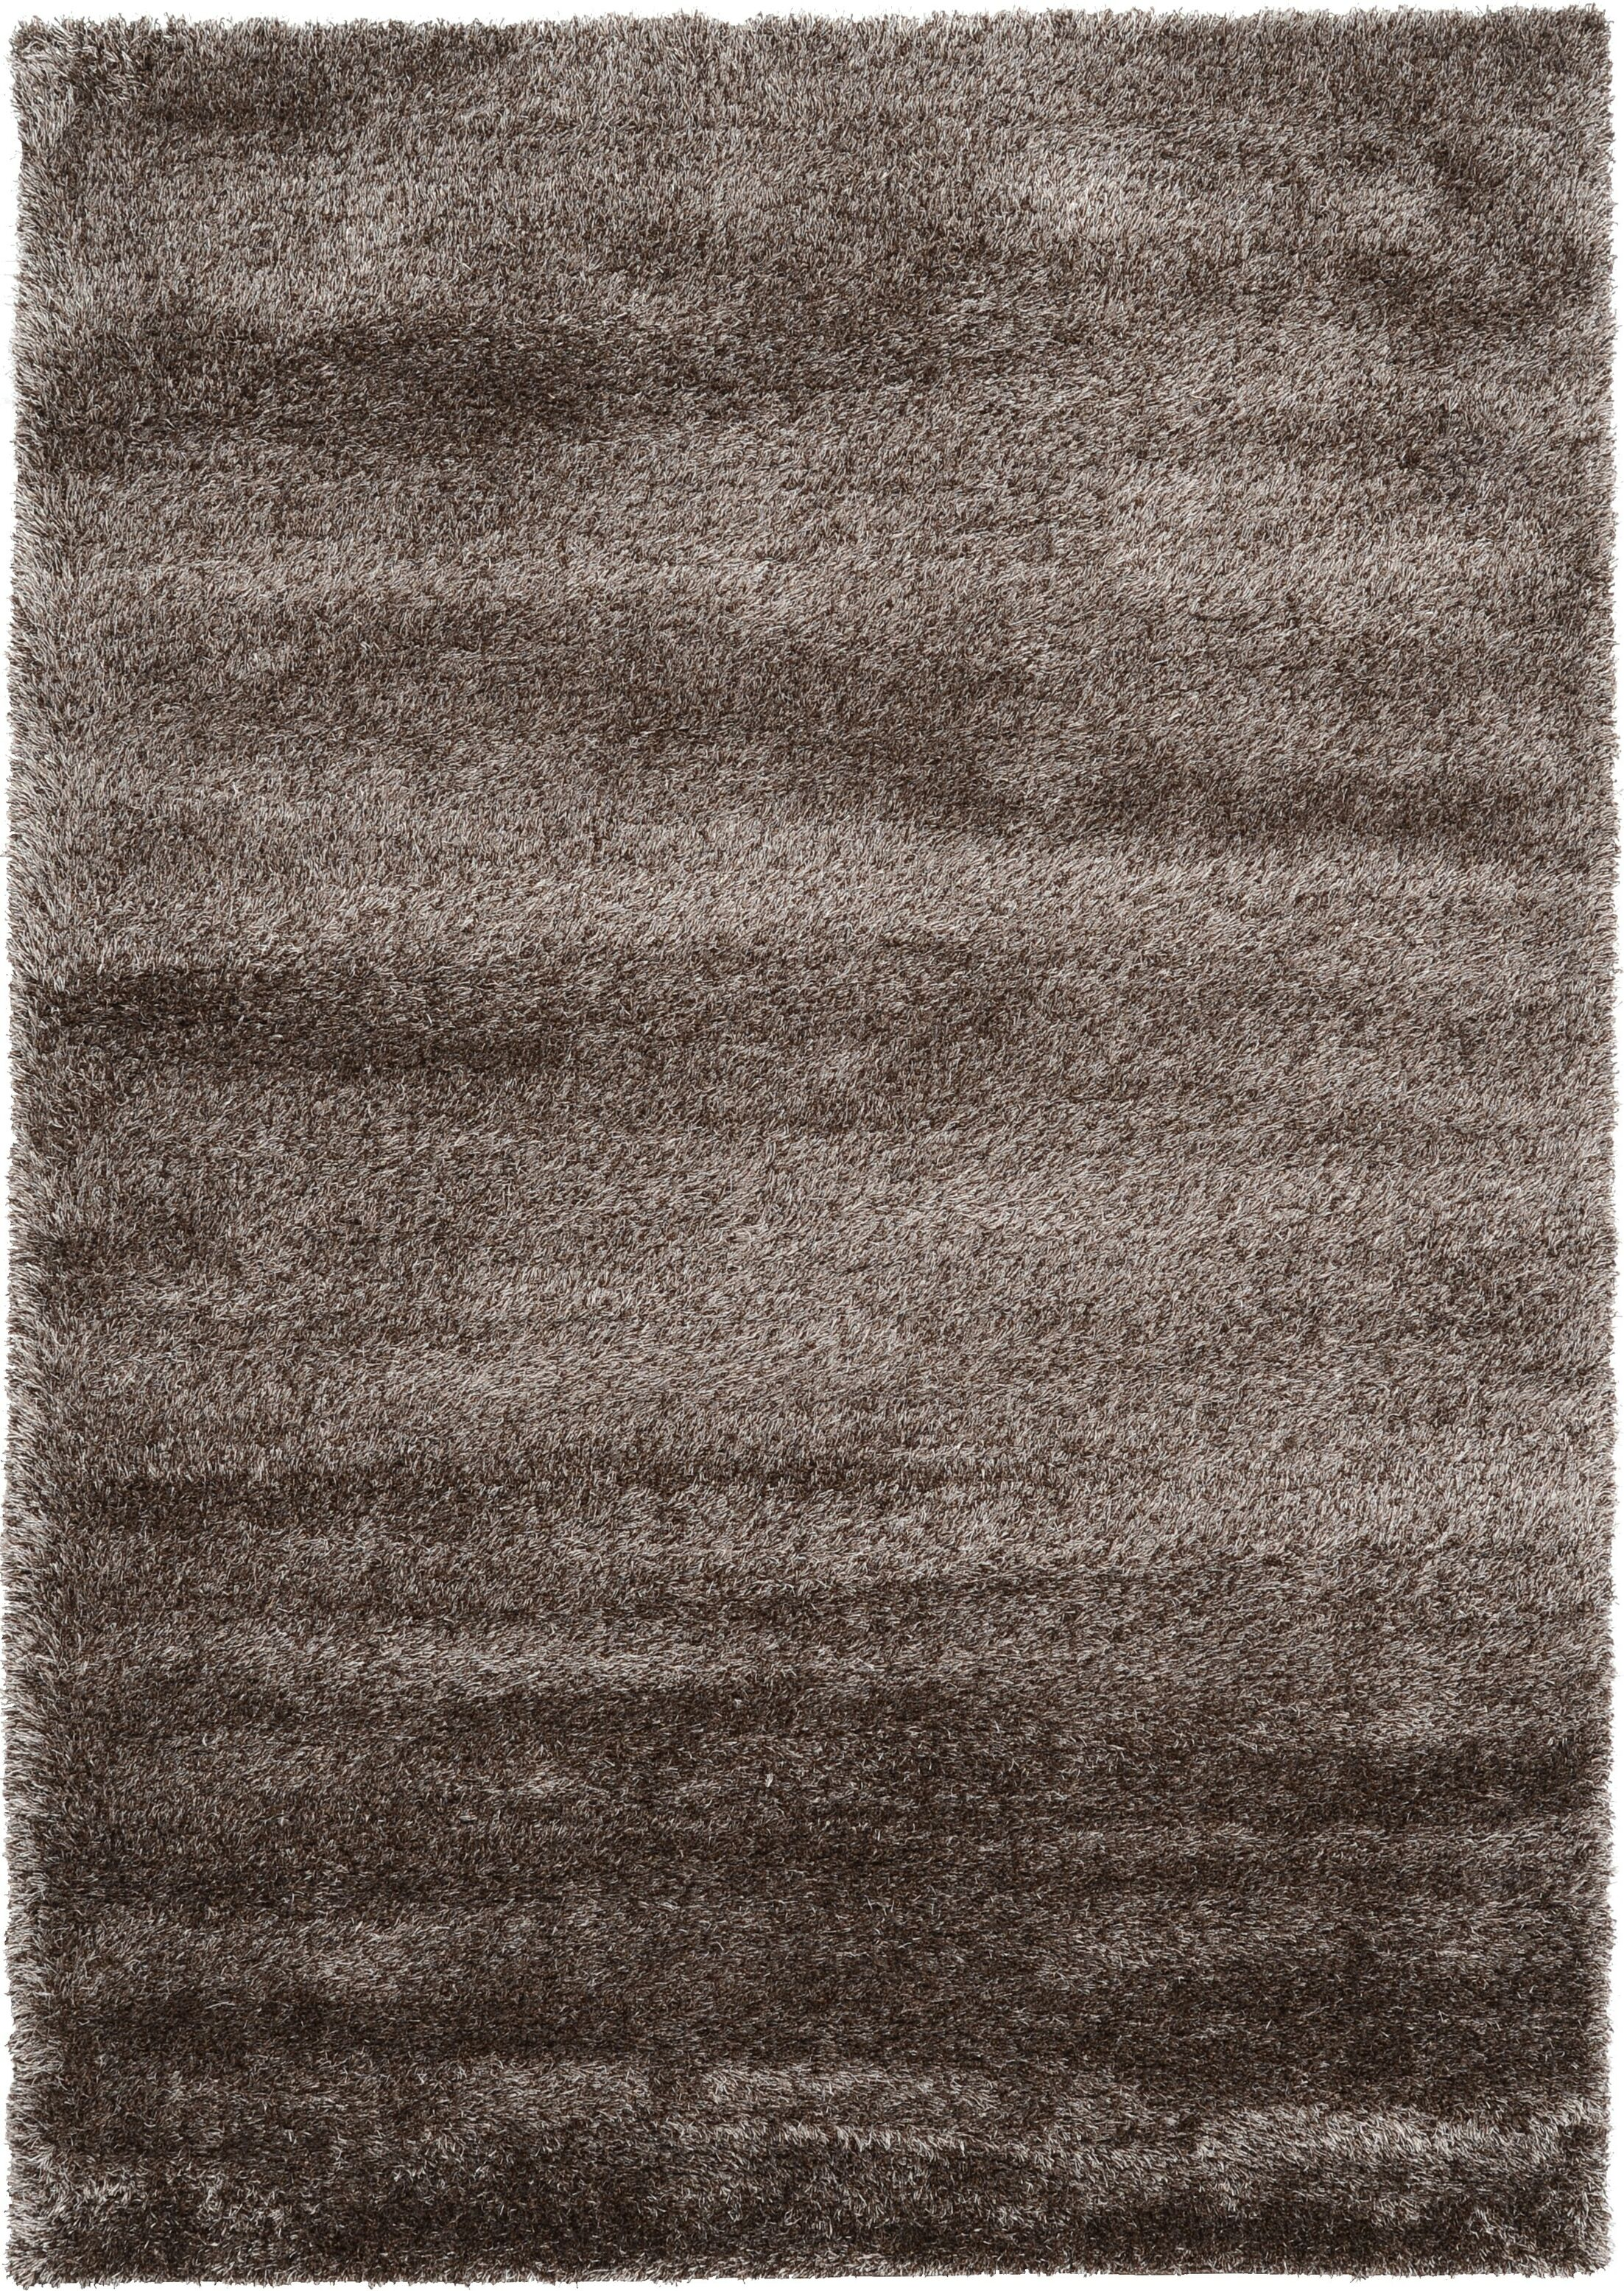 Evelyn Pinecone Brown Area Rug Rug Size: Rectangle 7' x 10'